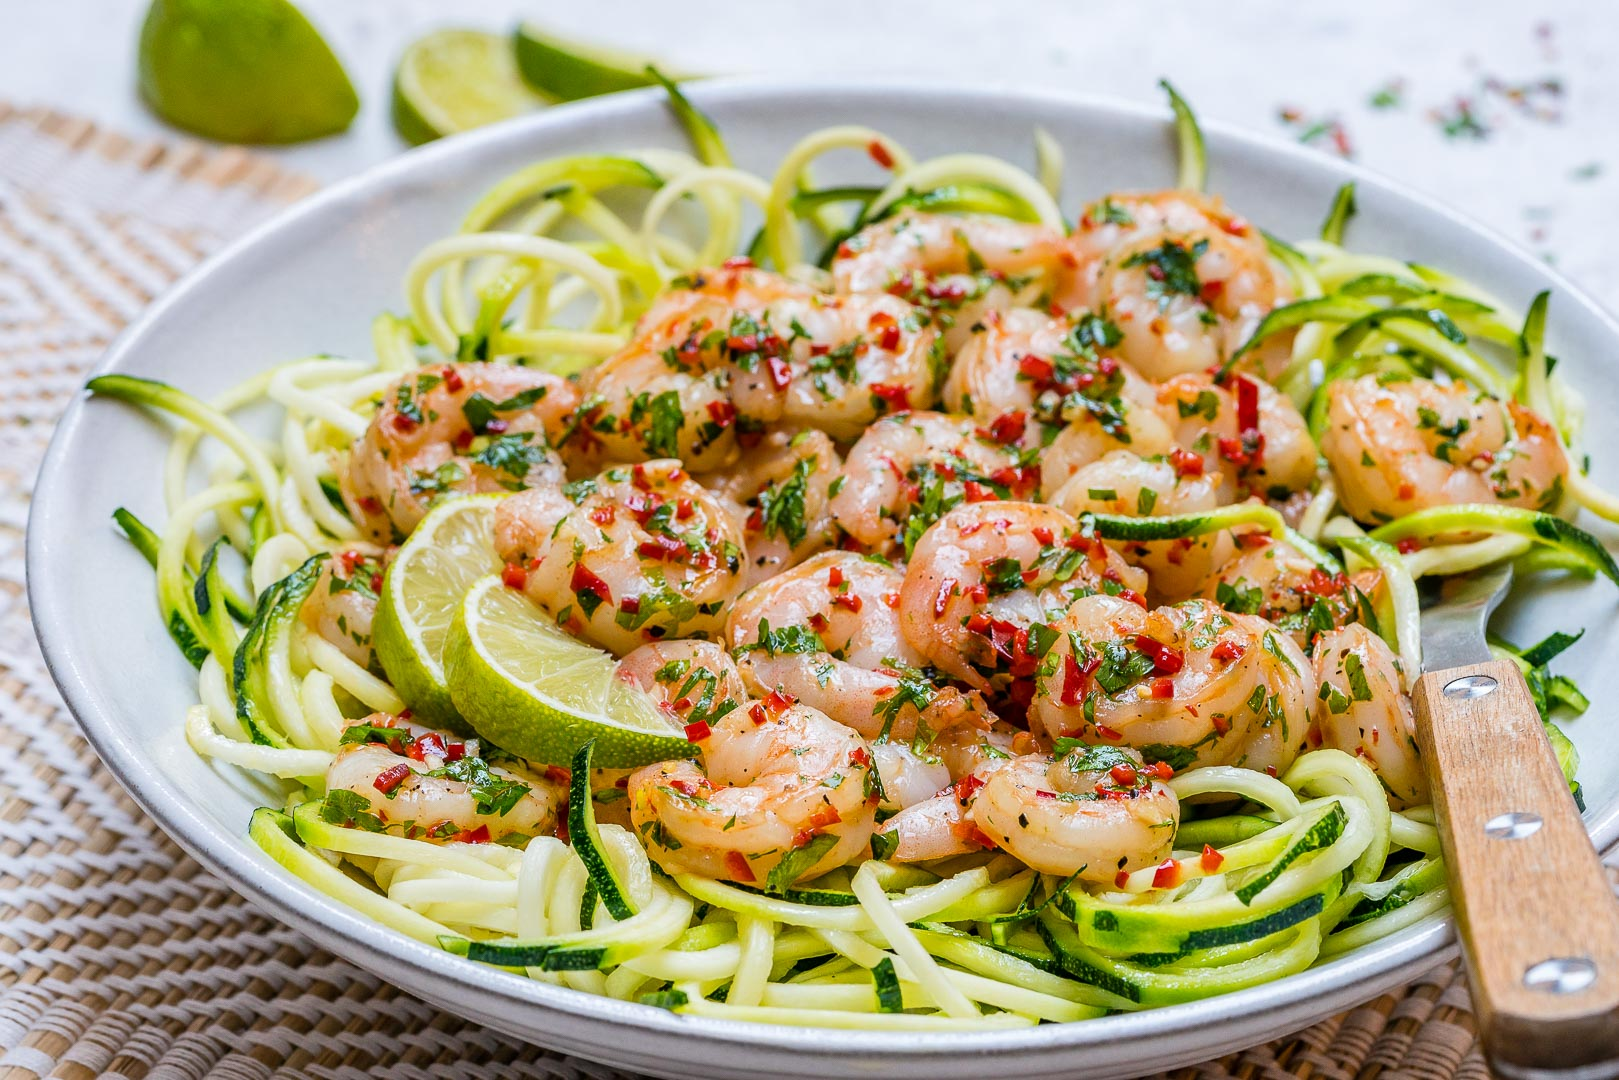 Chili Garlic Shrimp Zoodles Healthy Clean Eats